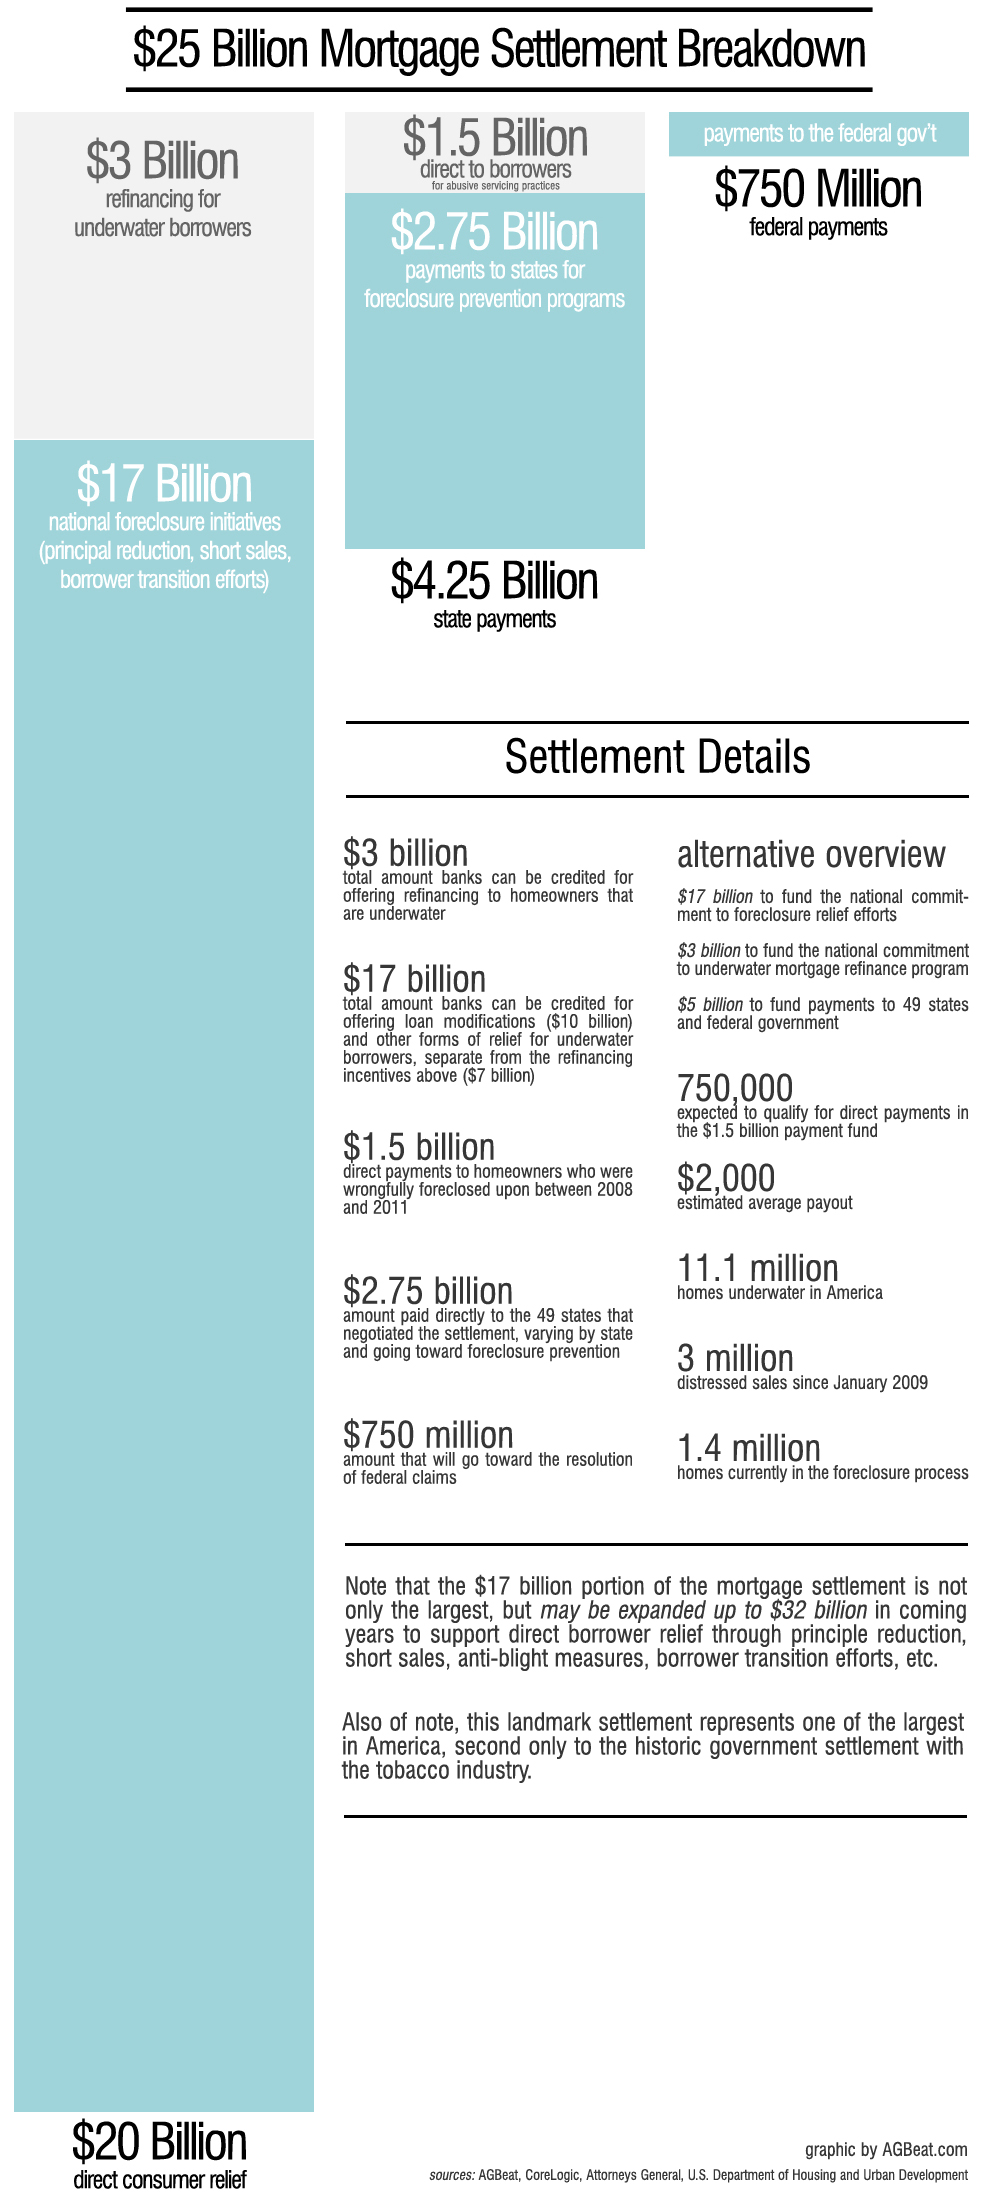 mortgage settlement breakdo Detailed breakdown of the $25 billion mortgage settlement